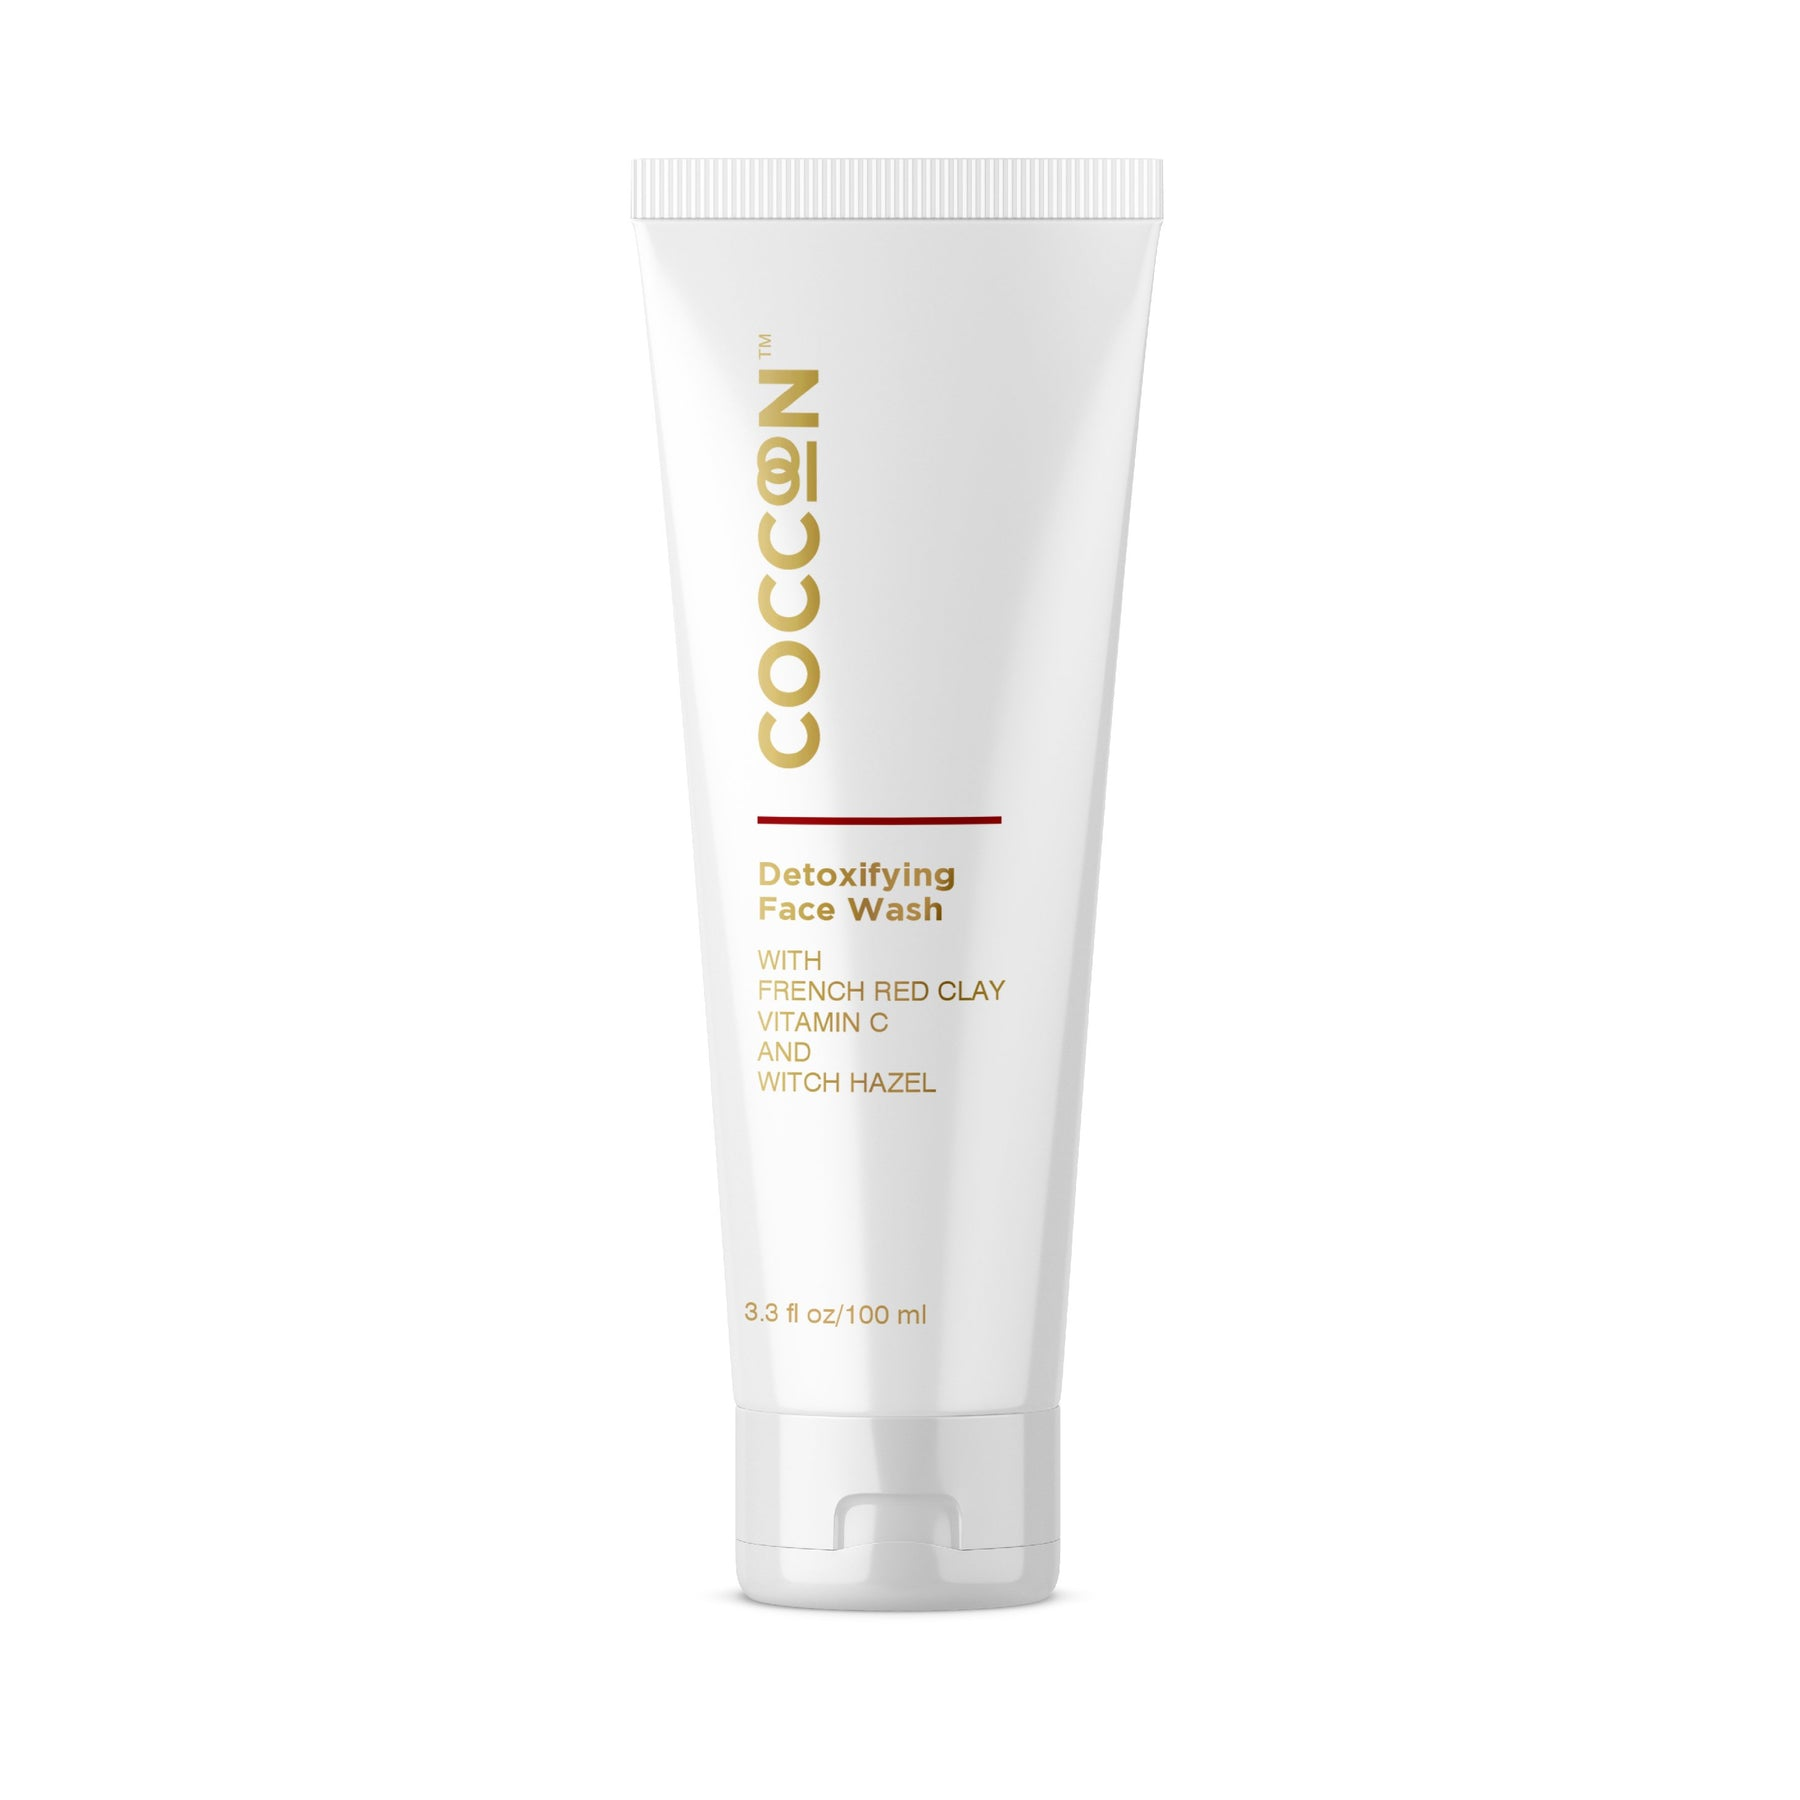 This is an image of Coccoon Detoxifying Face Wash on www.sublimelife.in